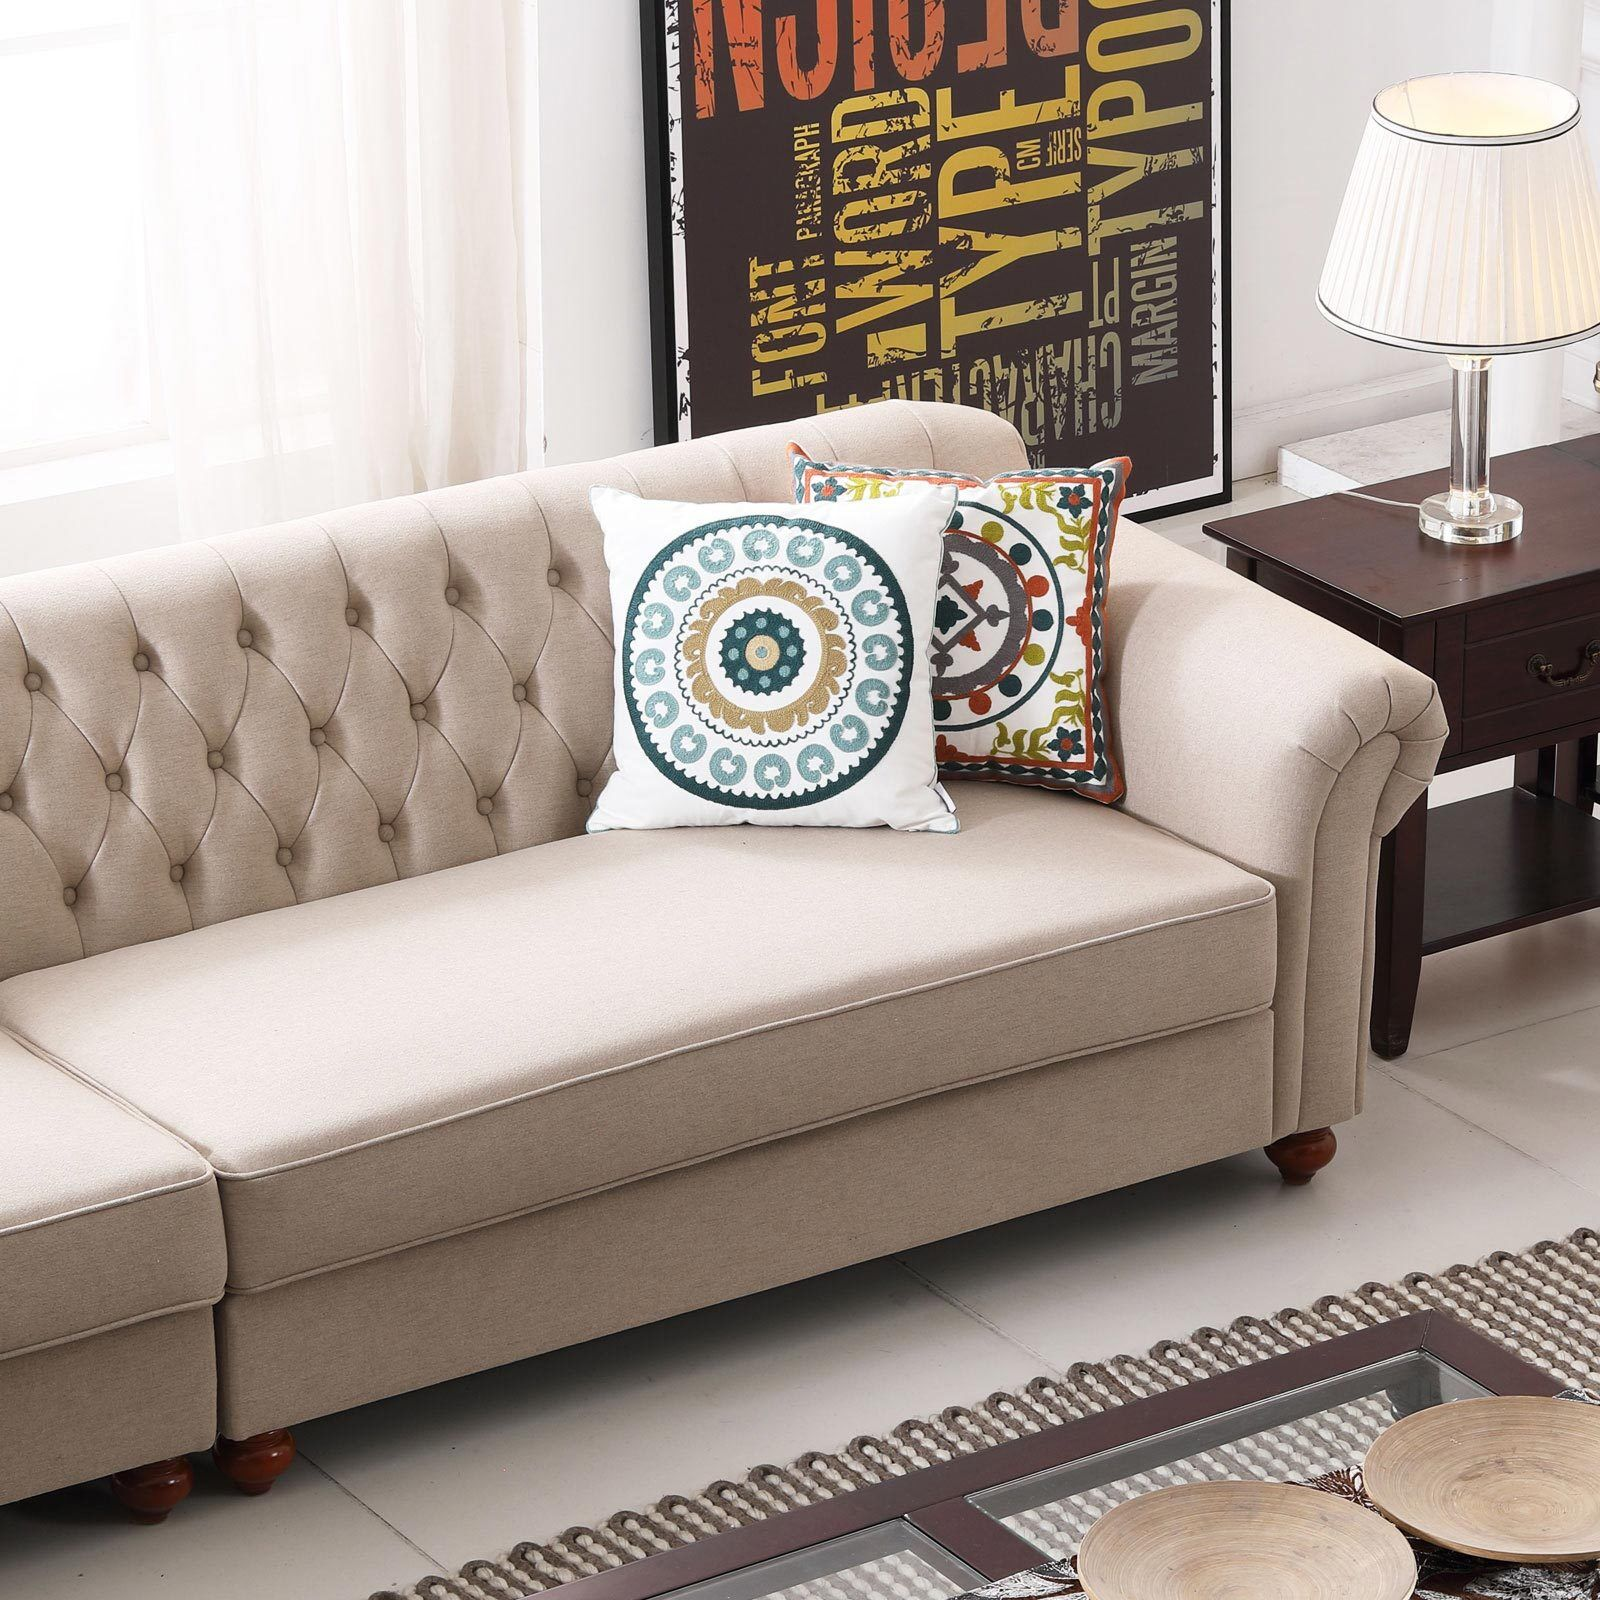 Remsoft 3pcs Left Chaise Lounge Chesterfield Sofa Couch Set- Beige